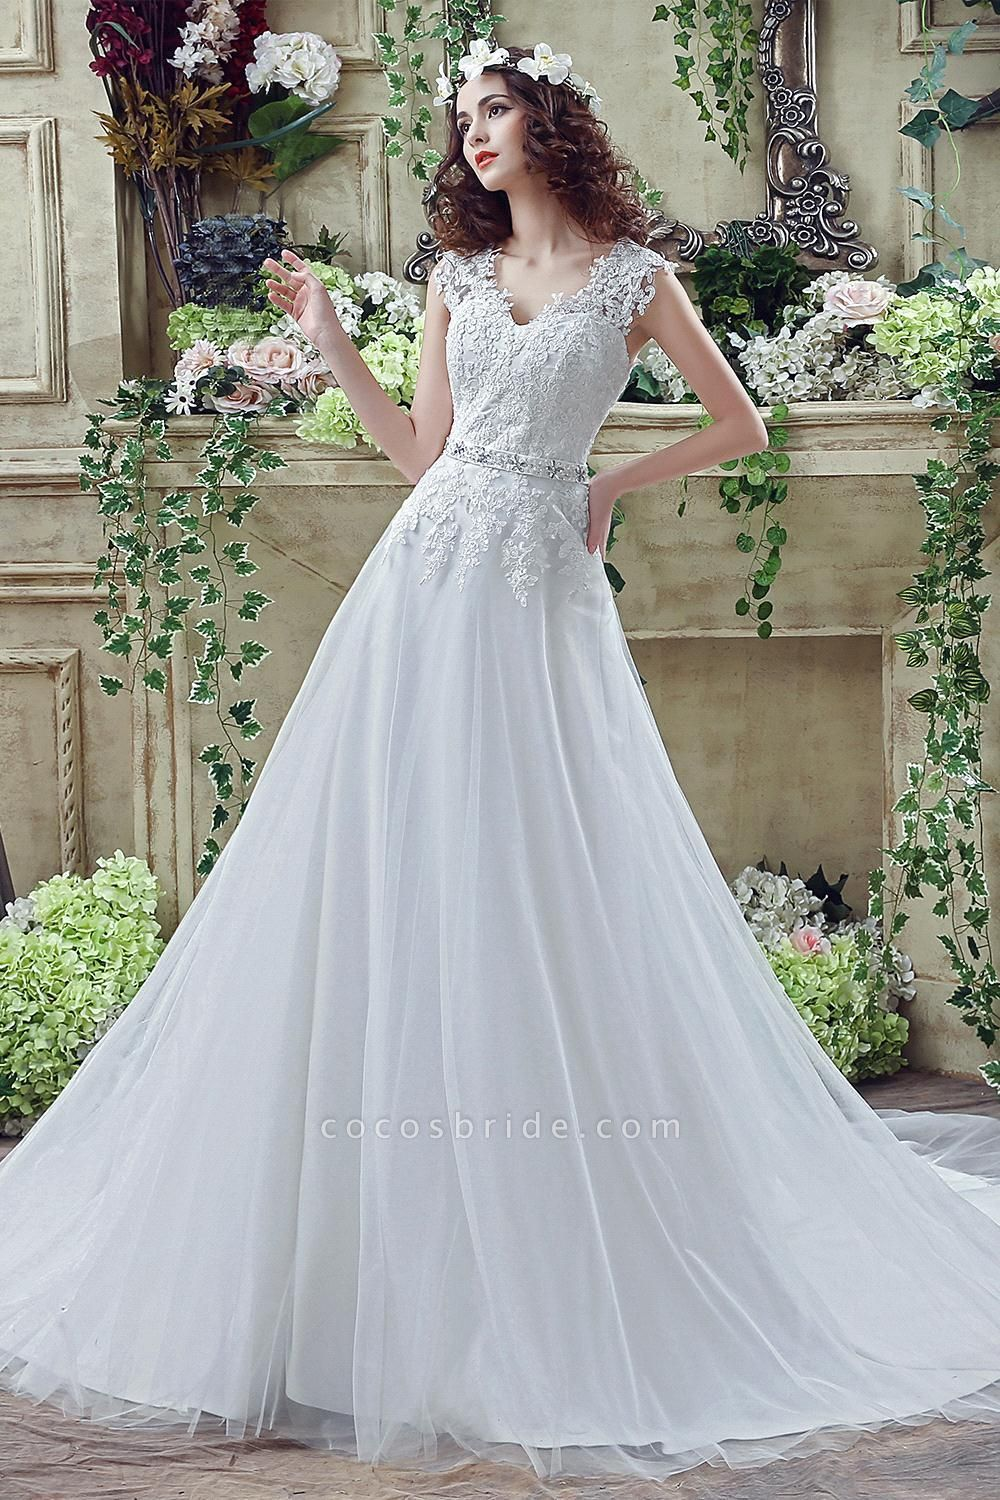 Lace Sheath Backless Cap Sleeves Wedding Dresses with Appliques